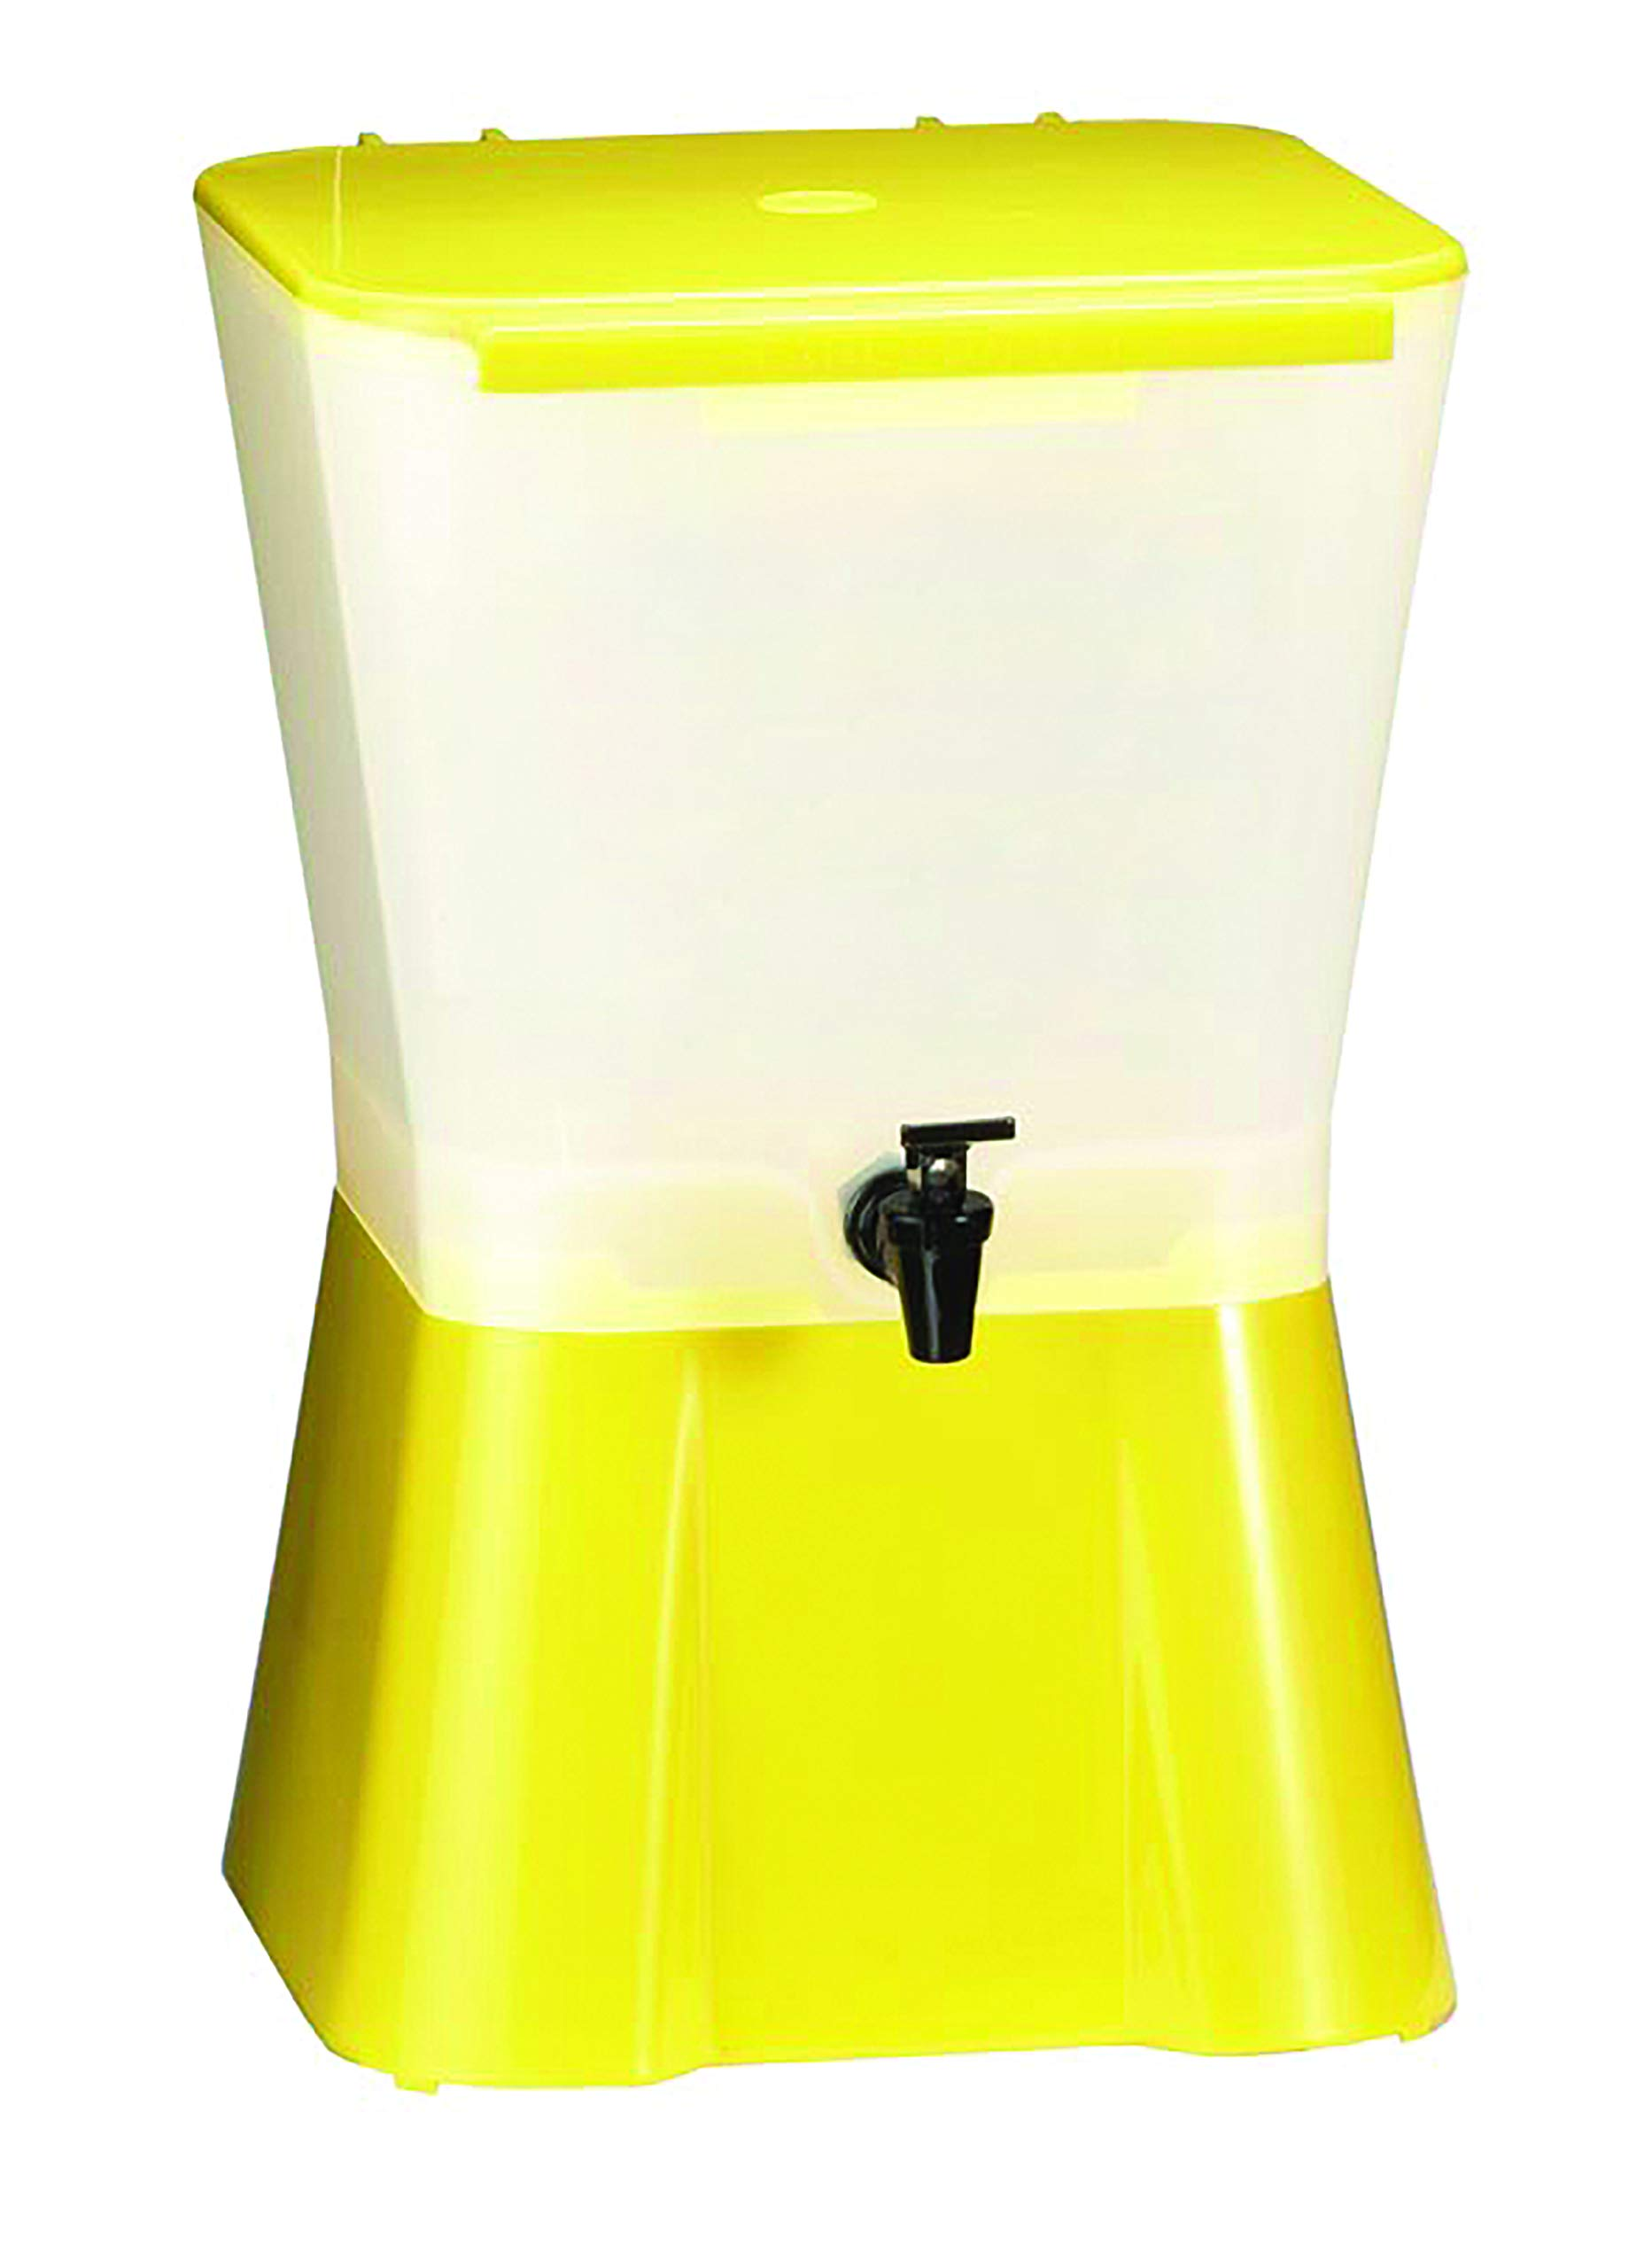 Tablecraft 3 Gallon Yellow Plastic Beverage Dispenser   Cold Drink Dispenser for Catering, Buffet or Restaurant Use by Tablecraft